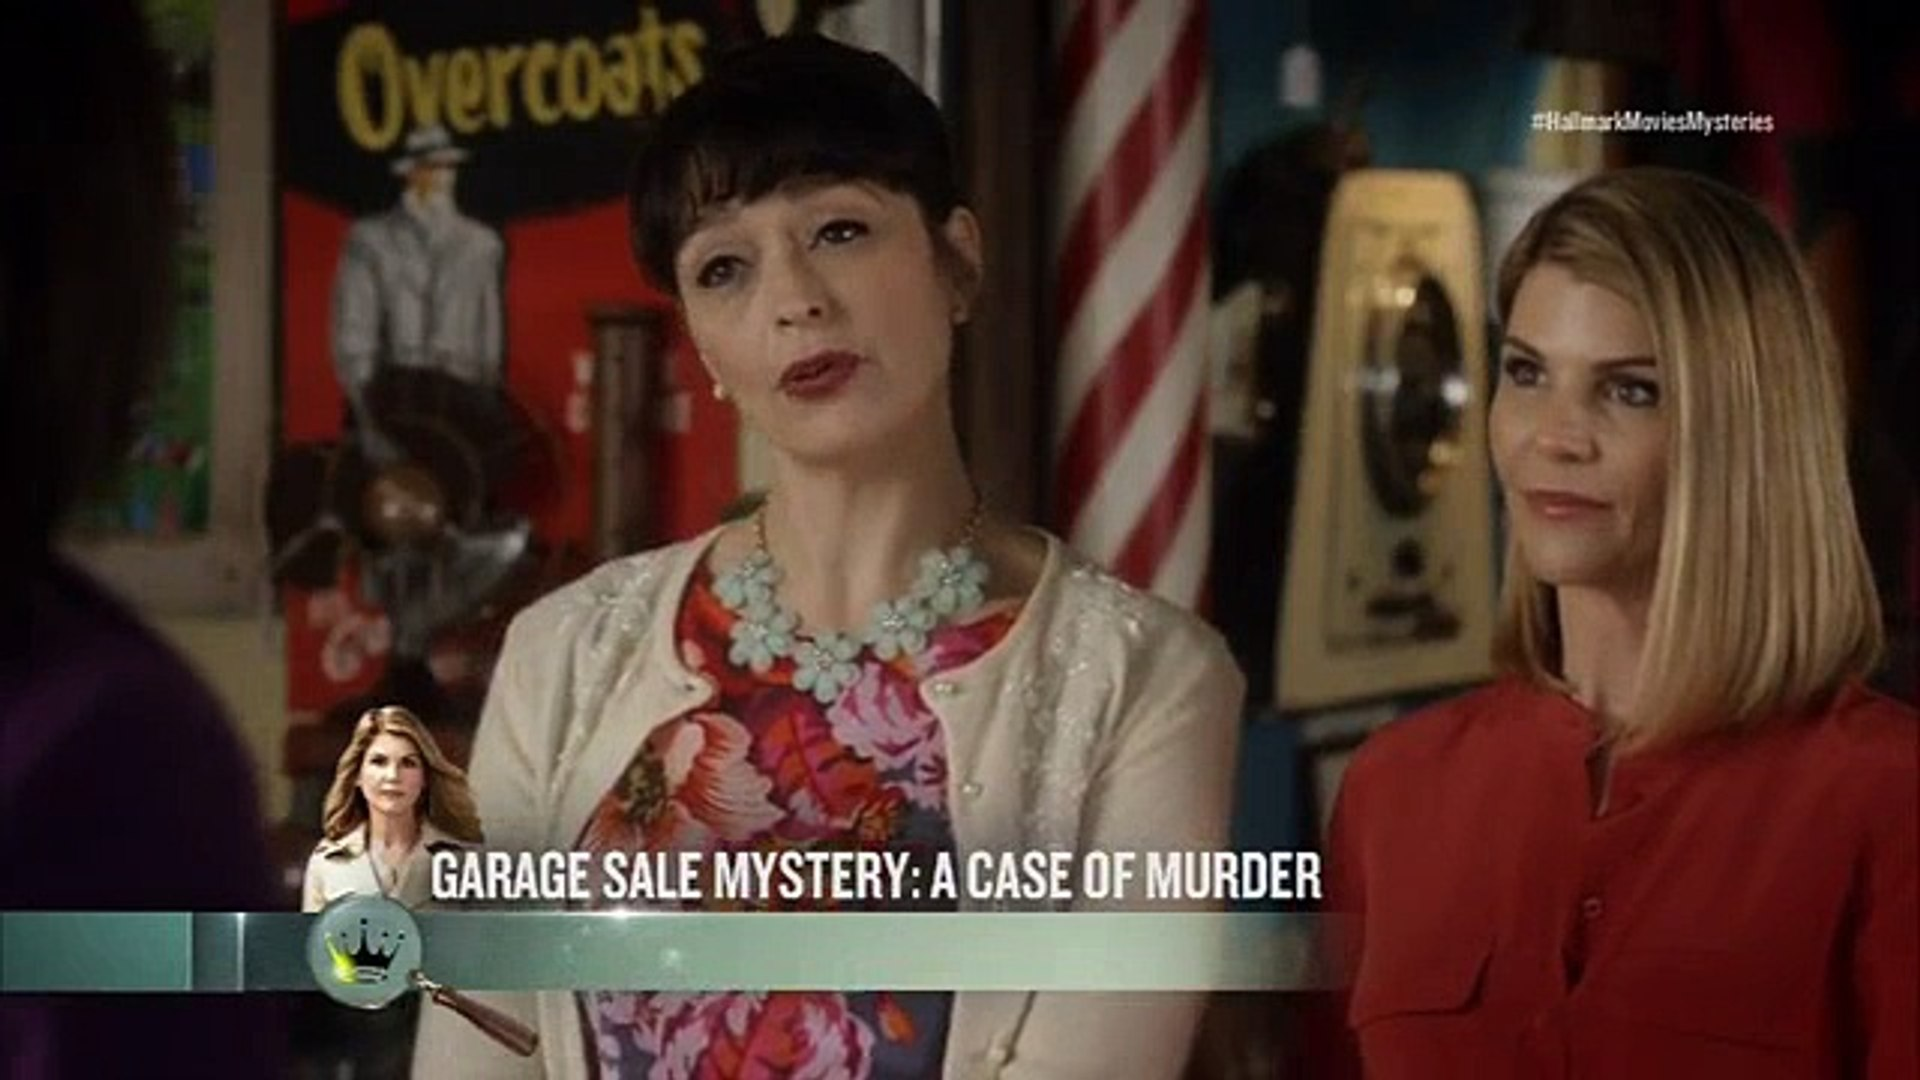 Garage Sale Mystery The Beach garage sale mystery s01e07 the beach murder vol. 02